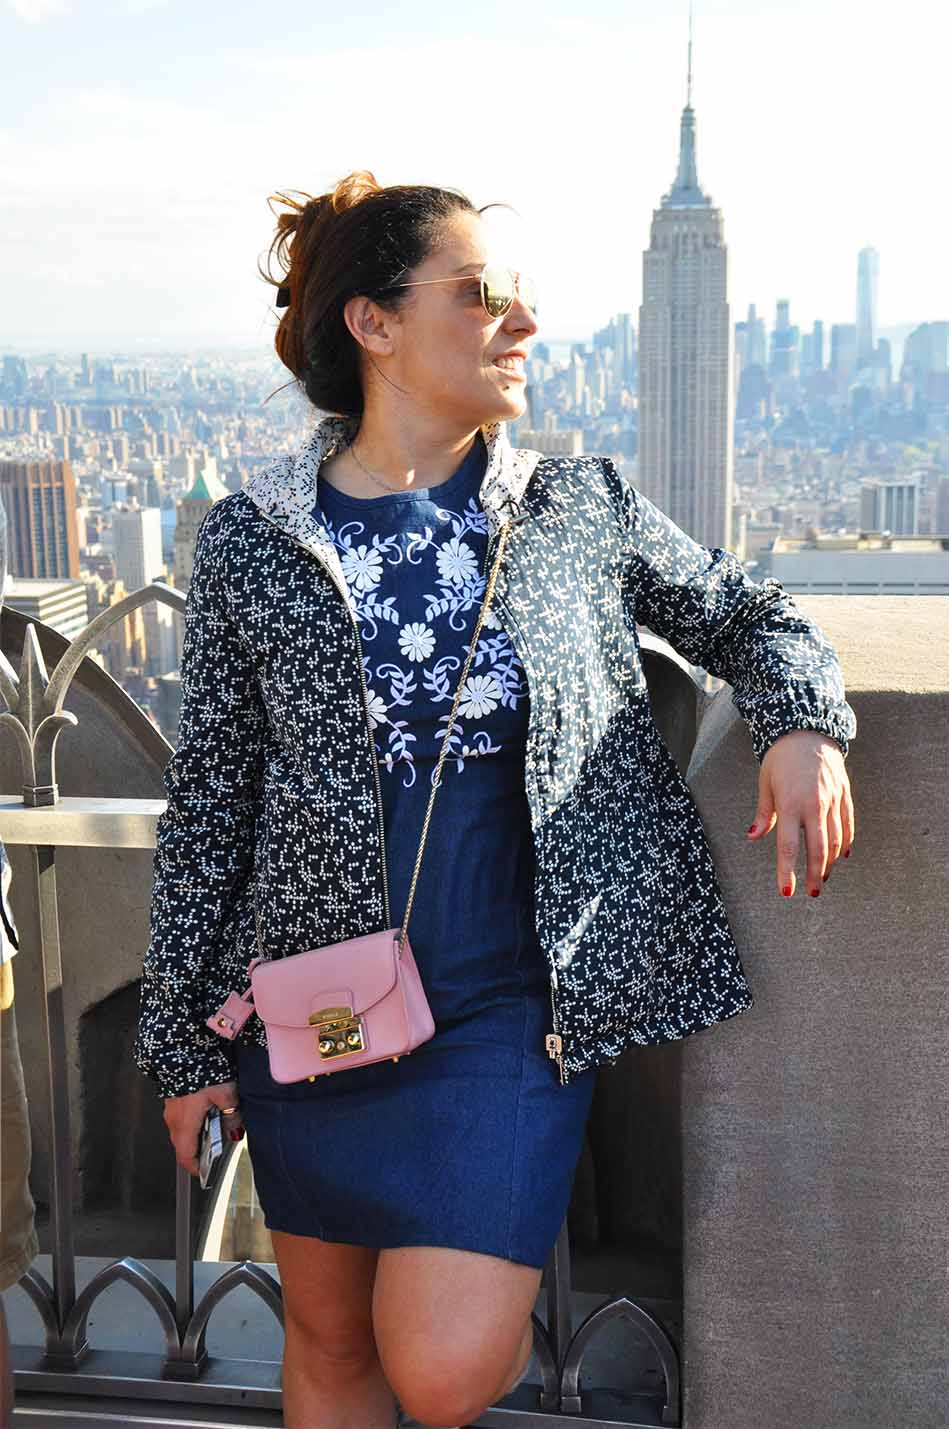 new-york-viaggio-consigli-posti-dove-andare-e-cosa-fare-park-avenue-rockefeller-center-valentina-coco-fashion-blogger-travel